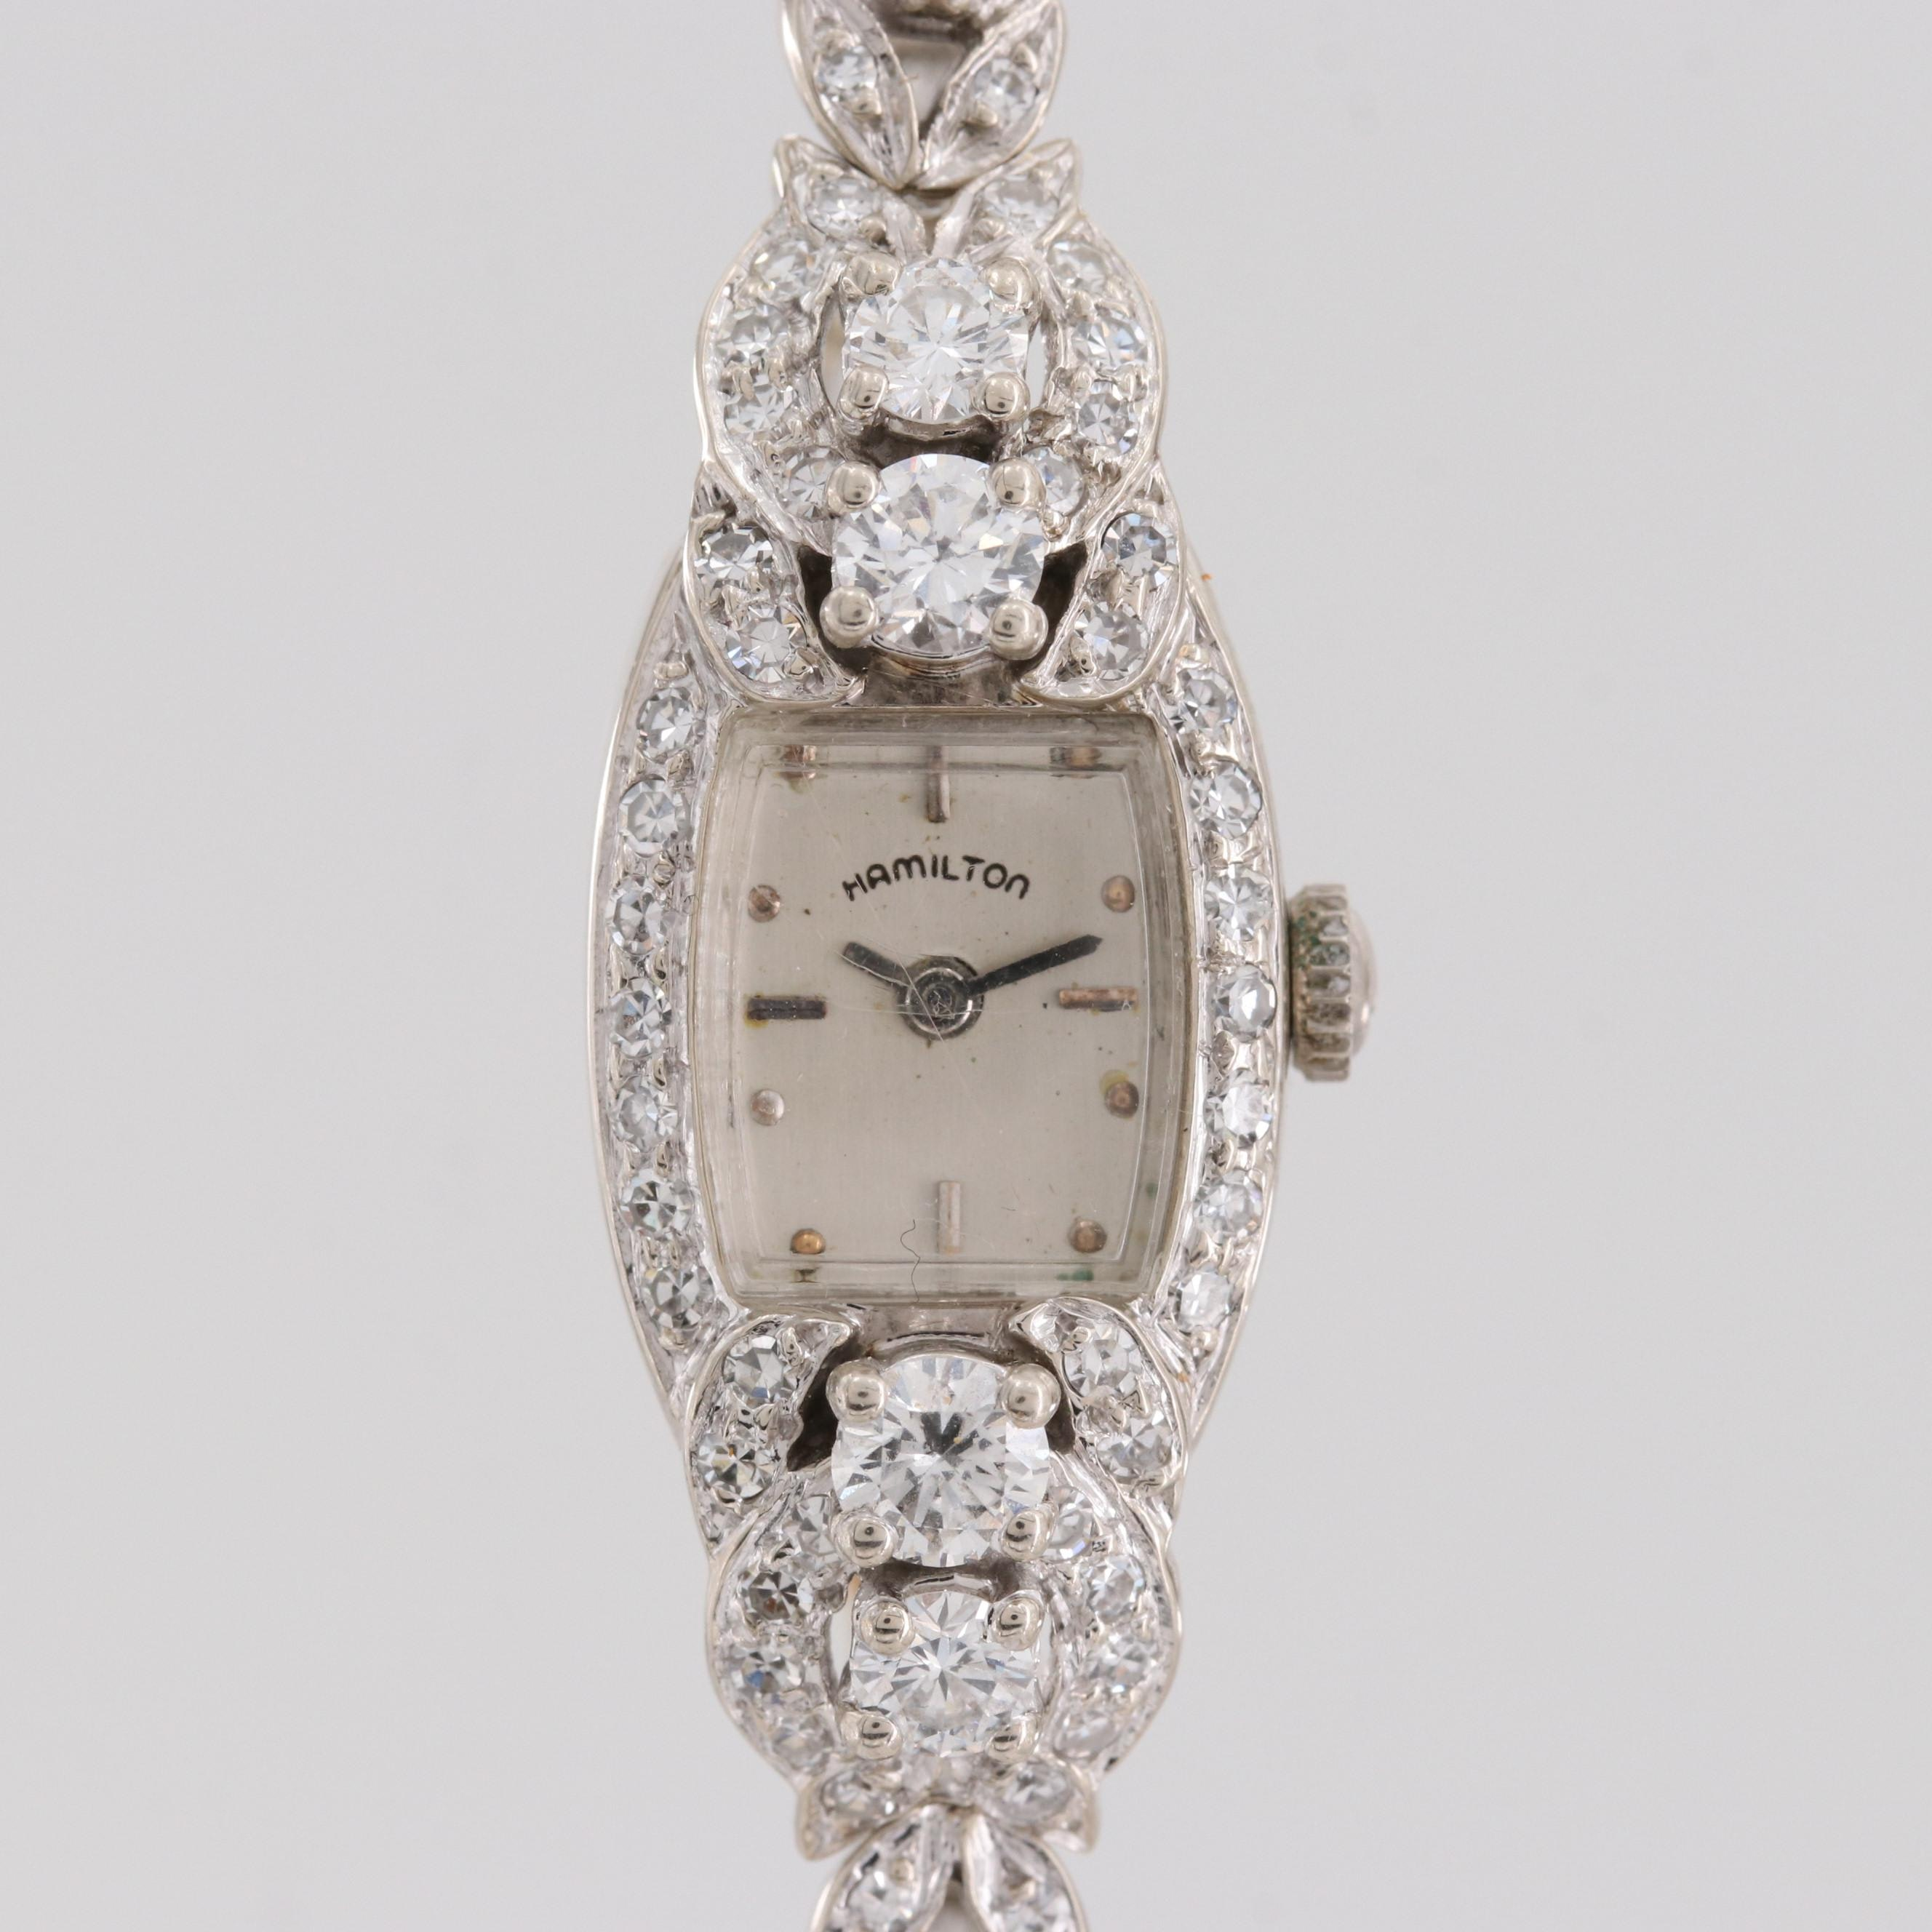 Vintage Hamilton 14K White Gold 2.55 CTW Diamond Quartz Wristwatch